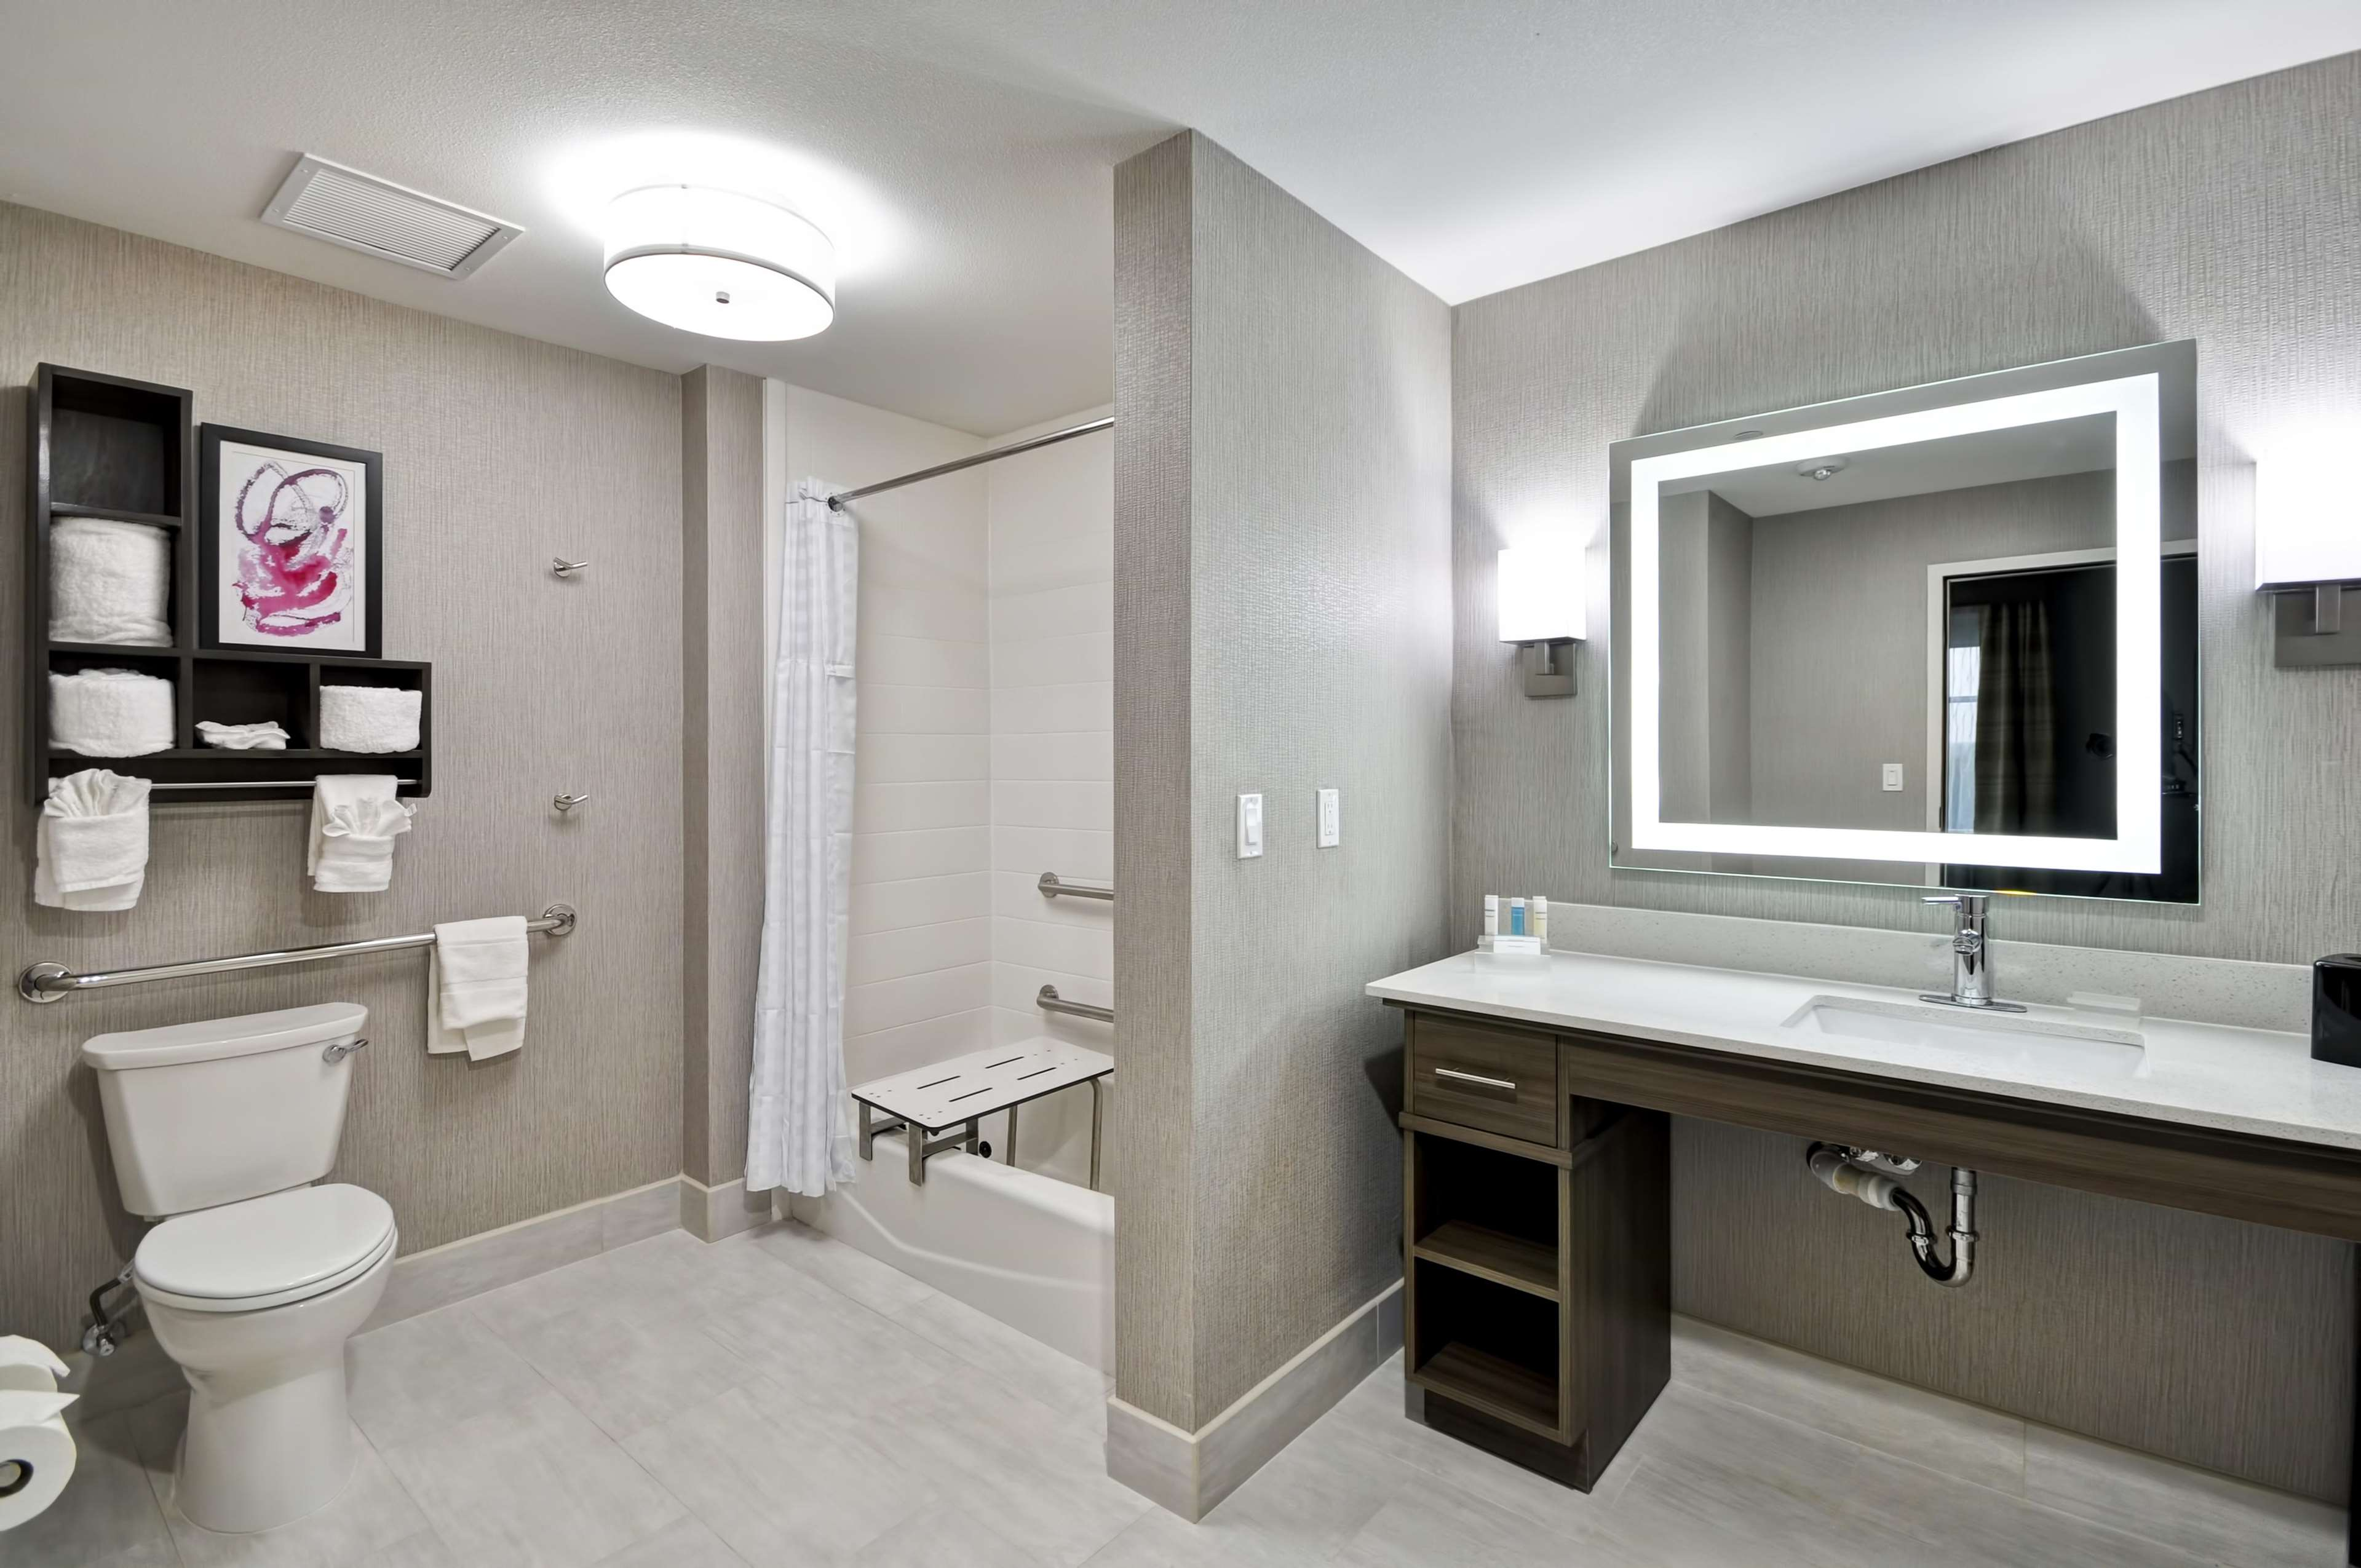 Homewood Suites by Hilton Tyler image 15